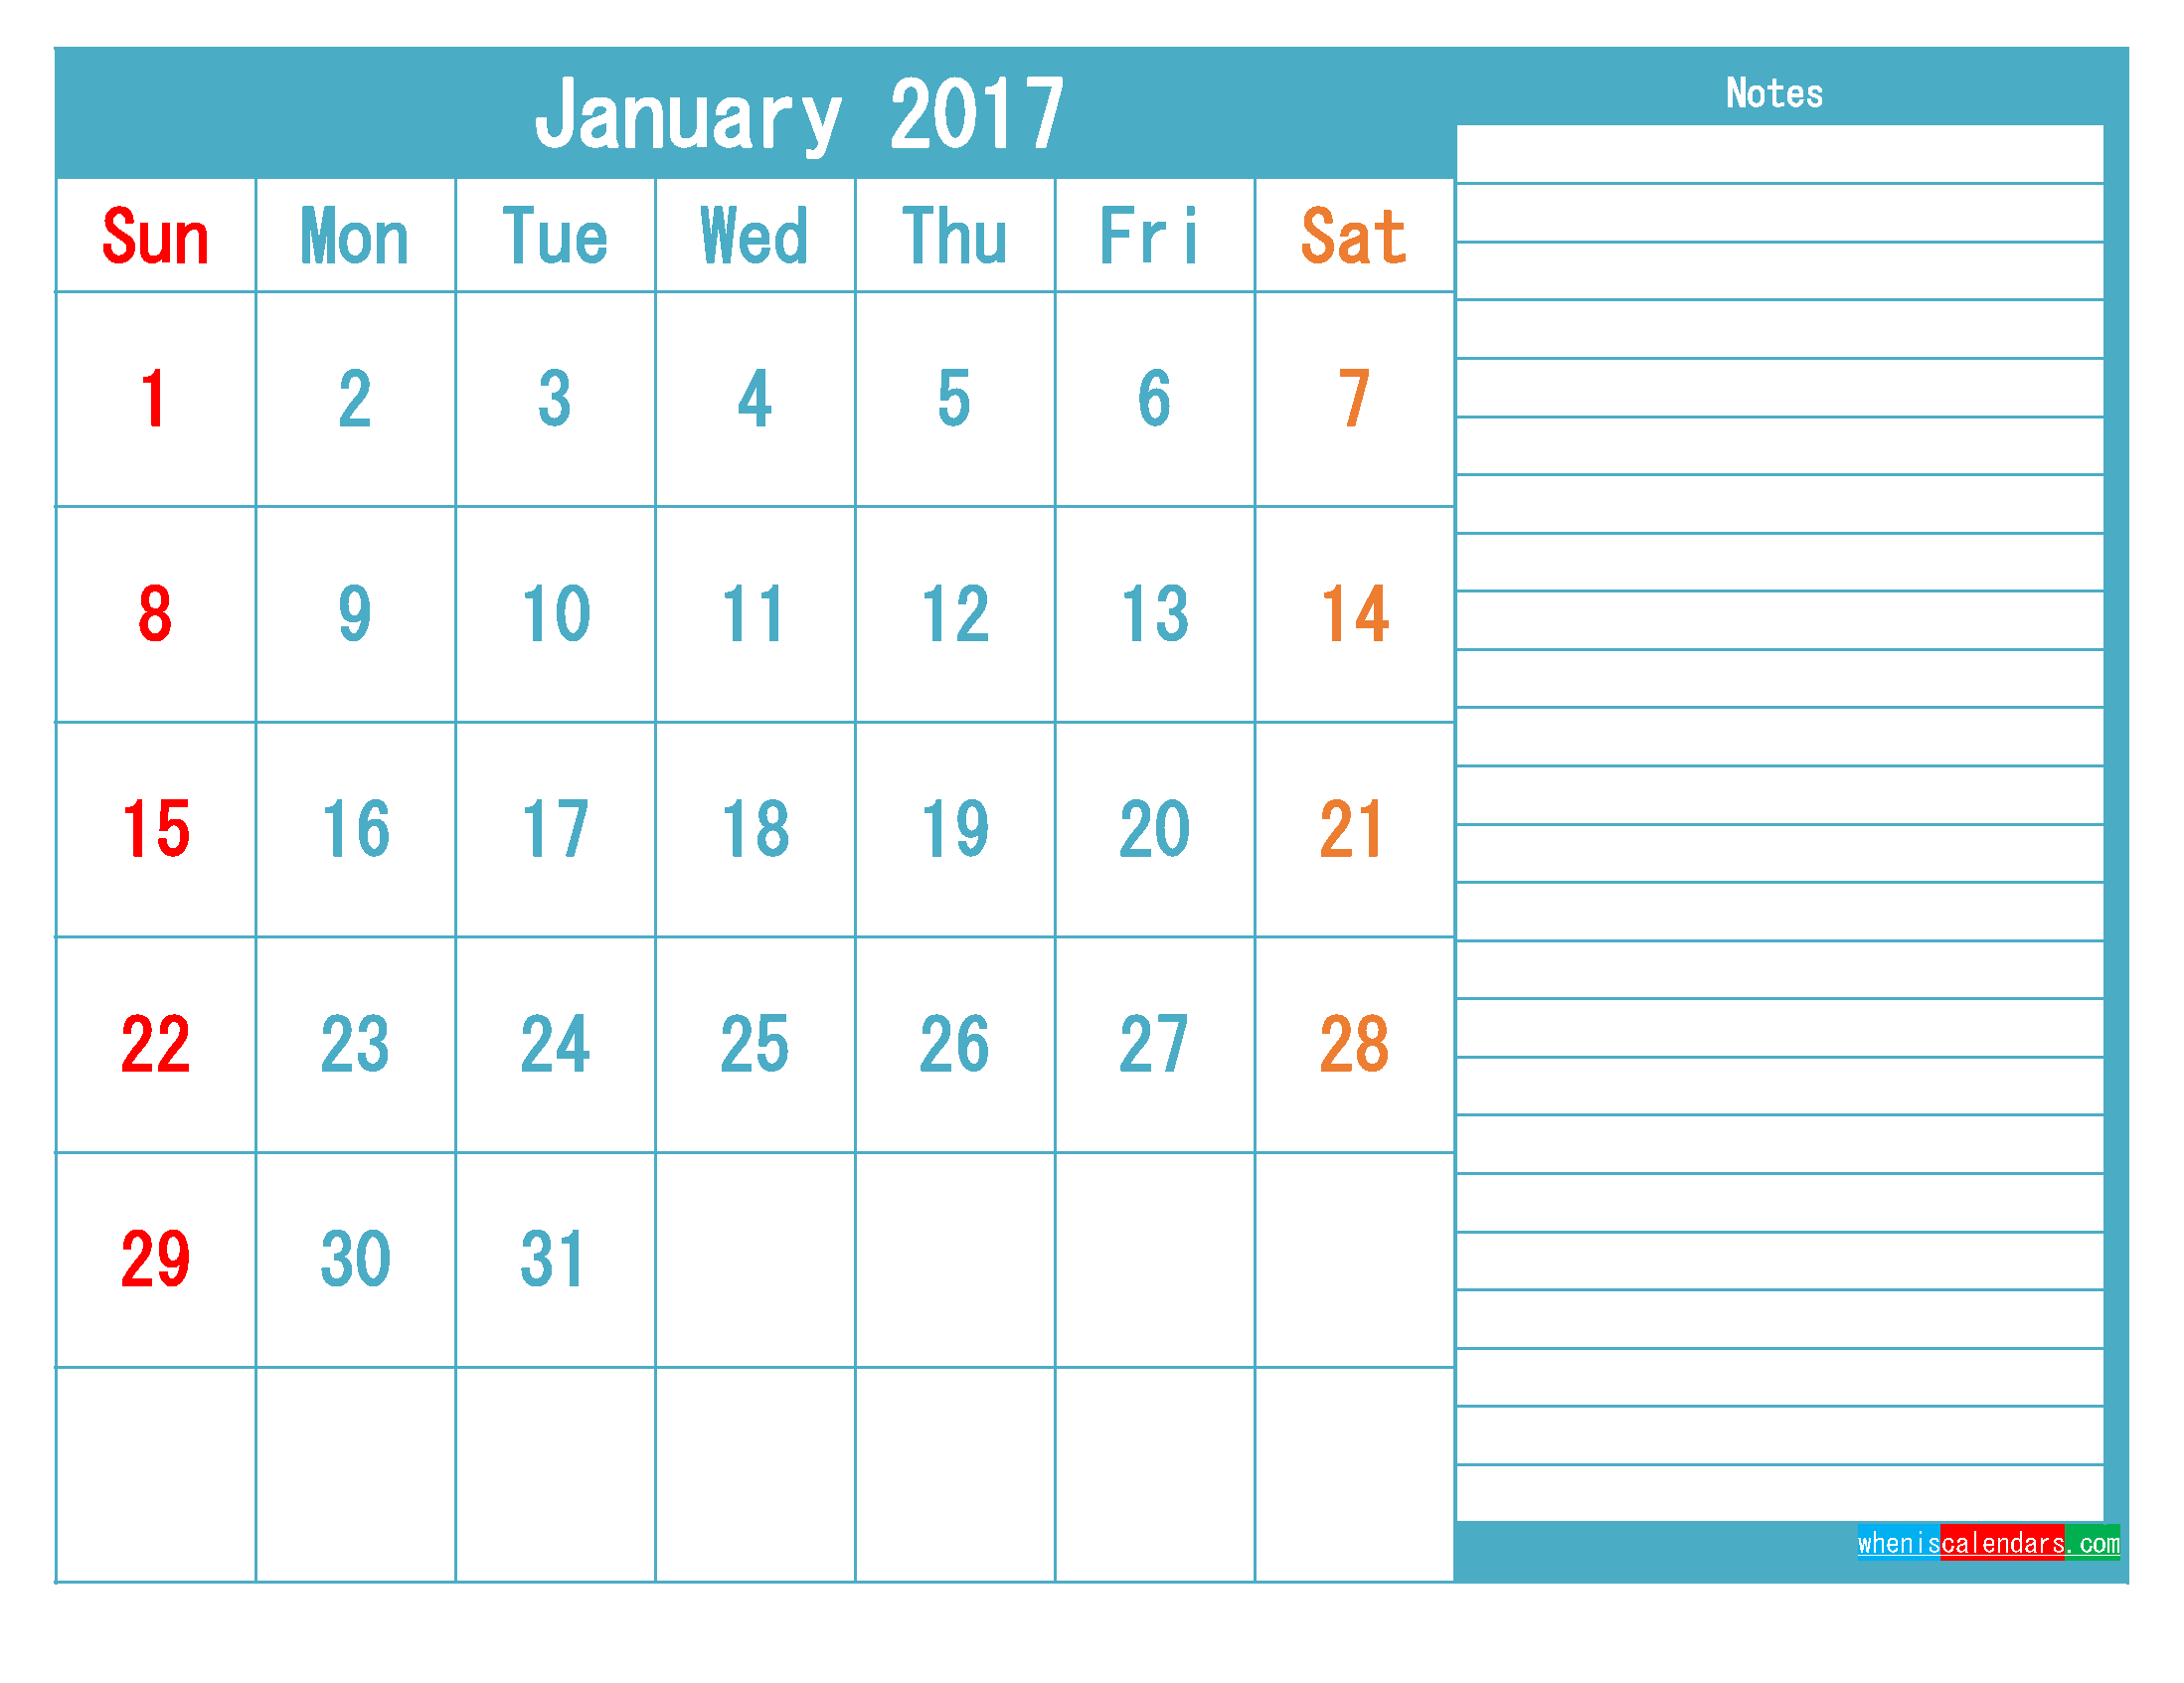 January 2017 Printable Calendar Templates PDF and Image